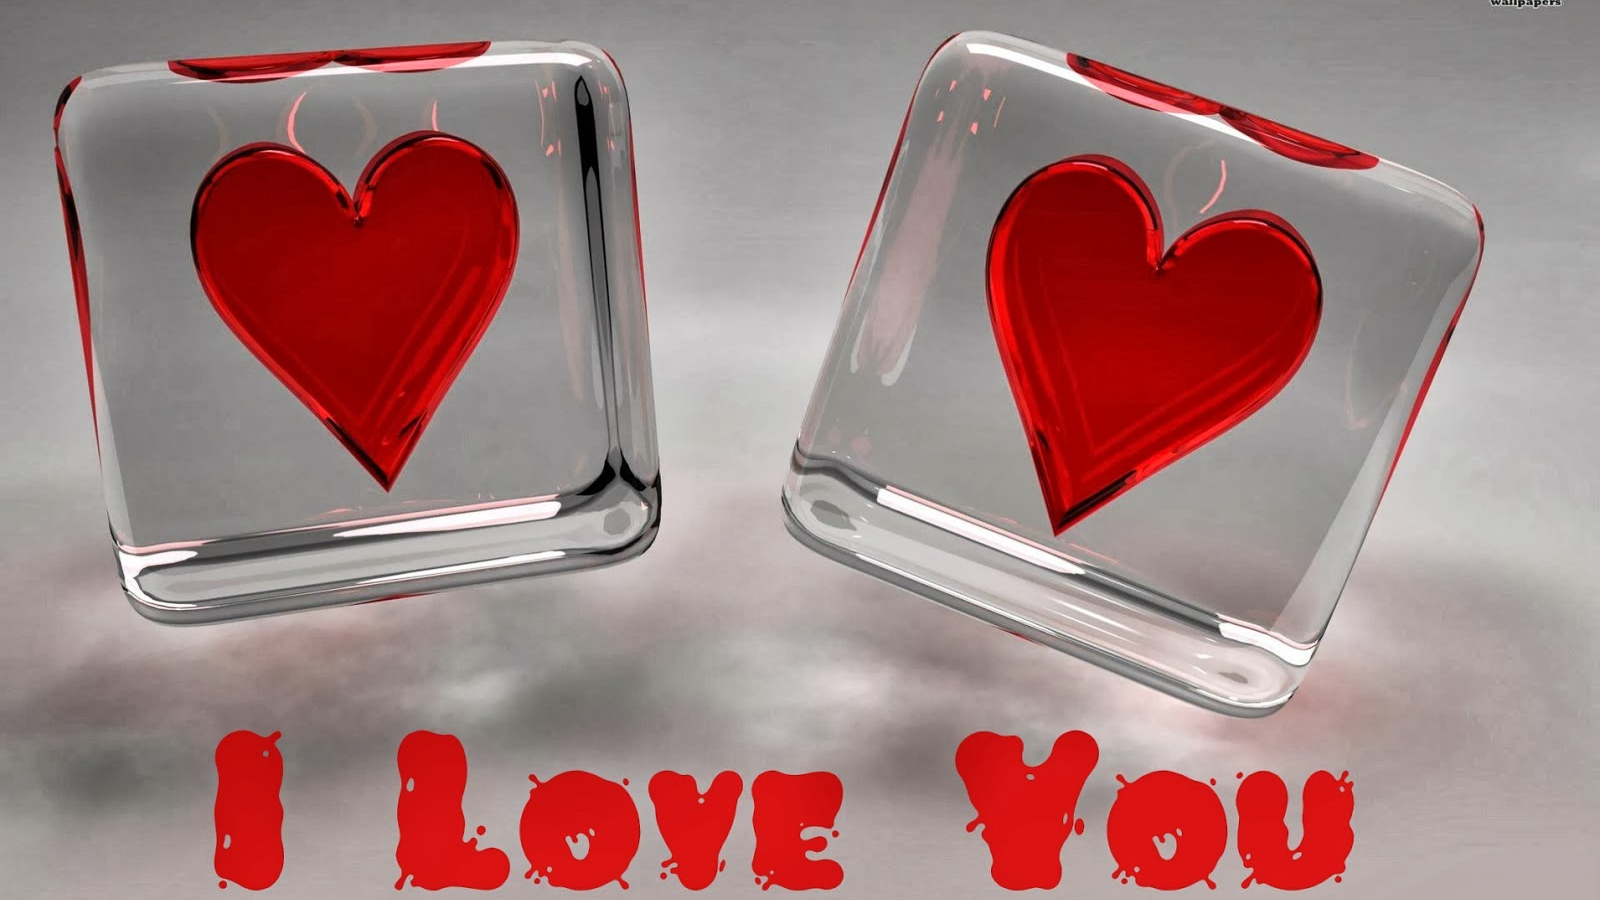 Free Download Day I Love You Wallpaper Hd Download This Wallpaper